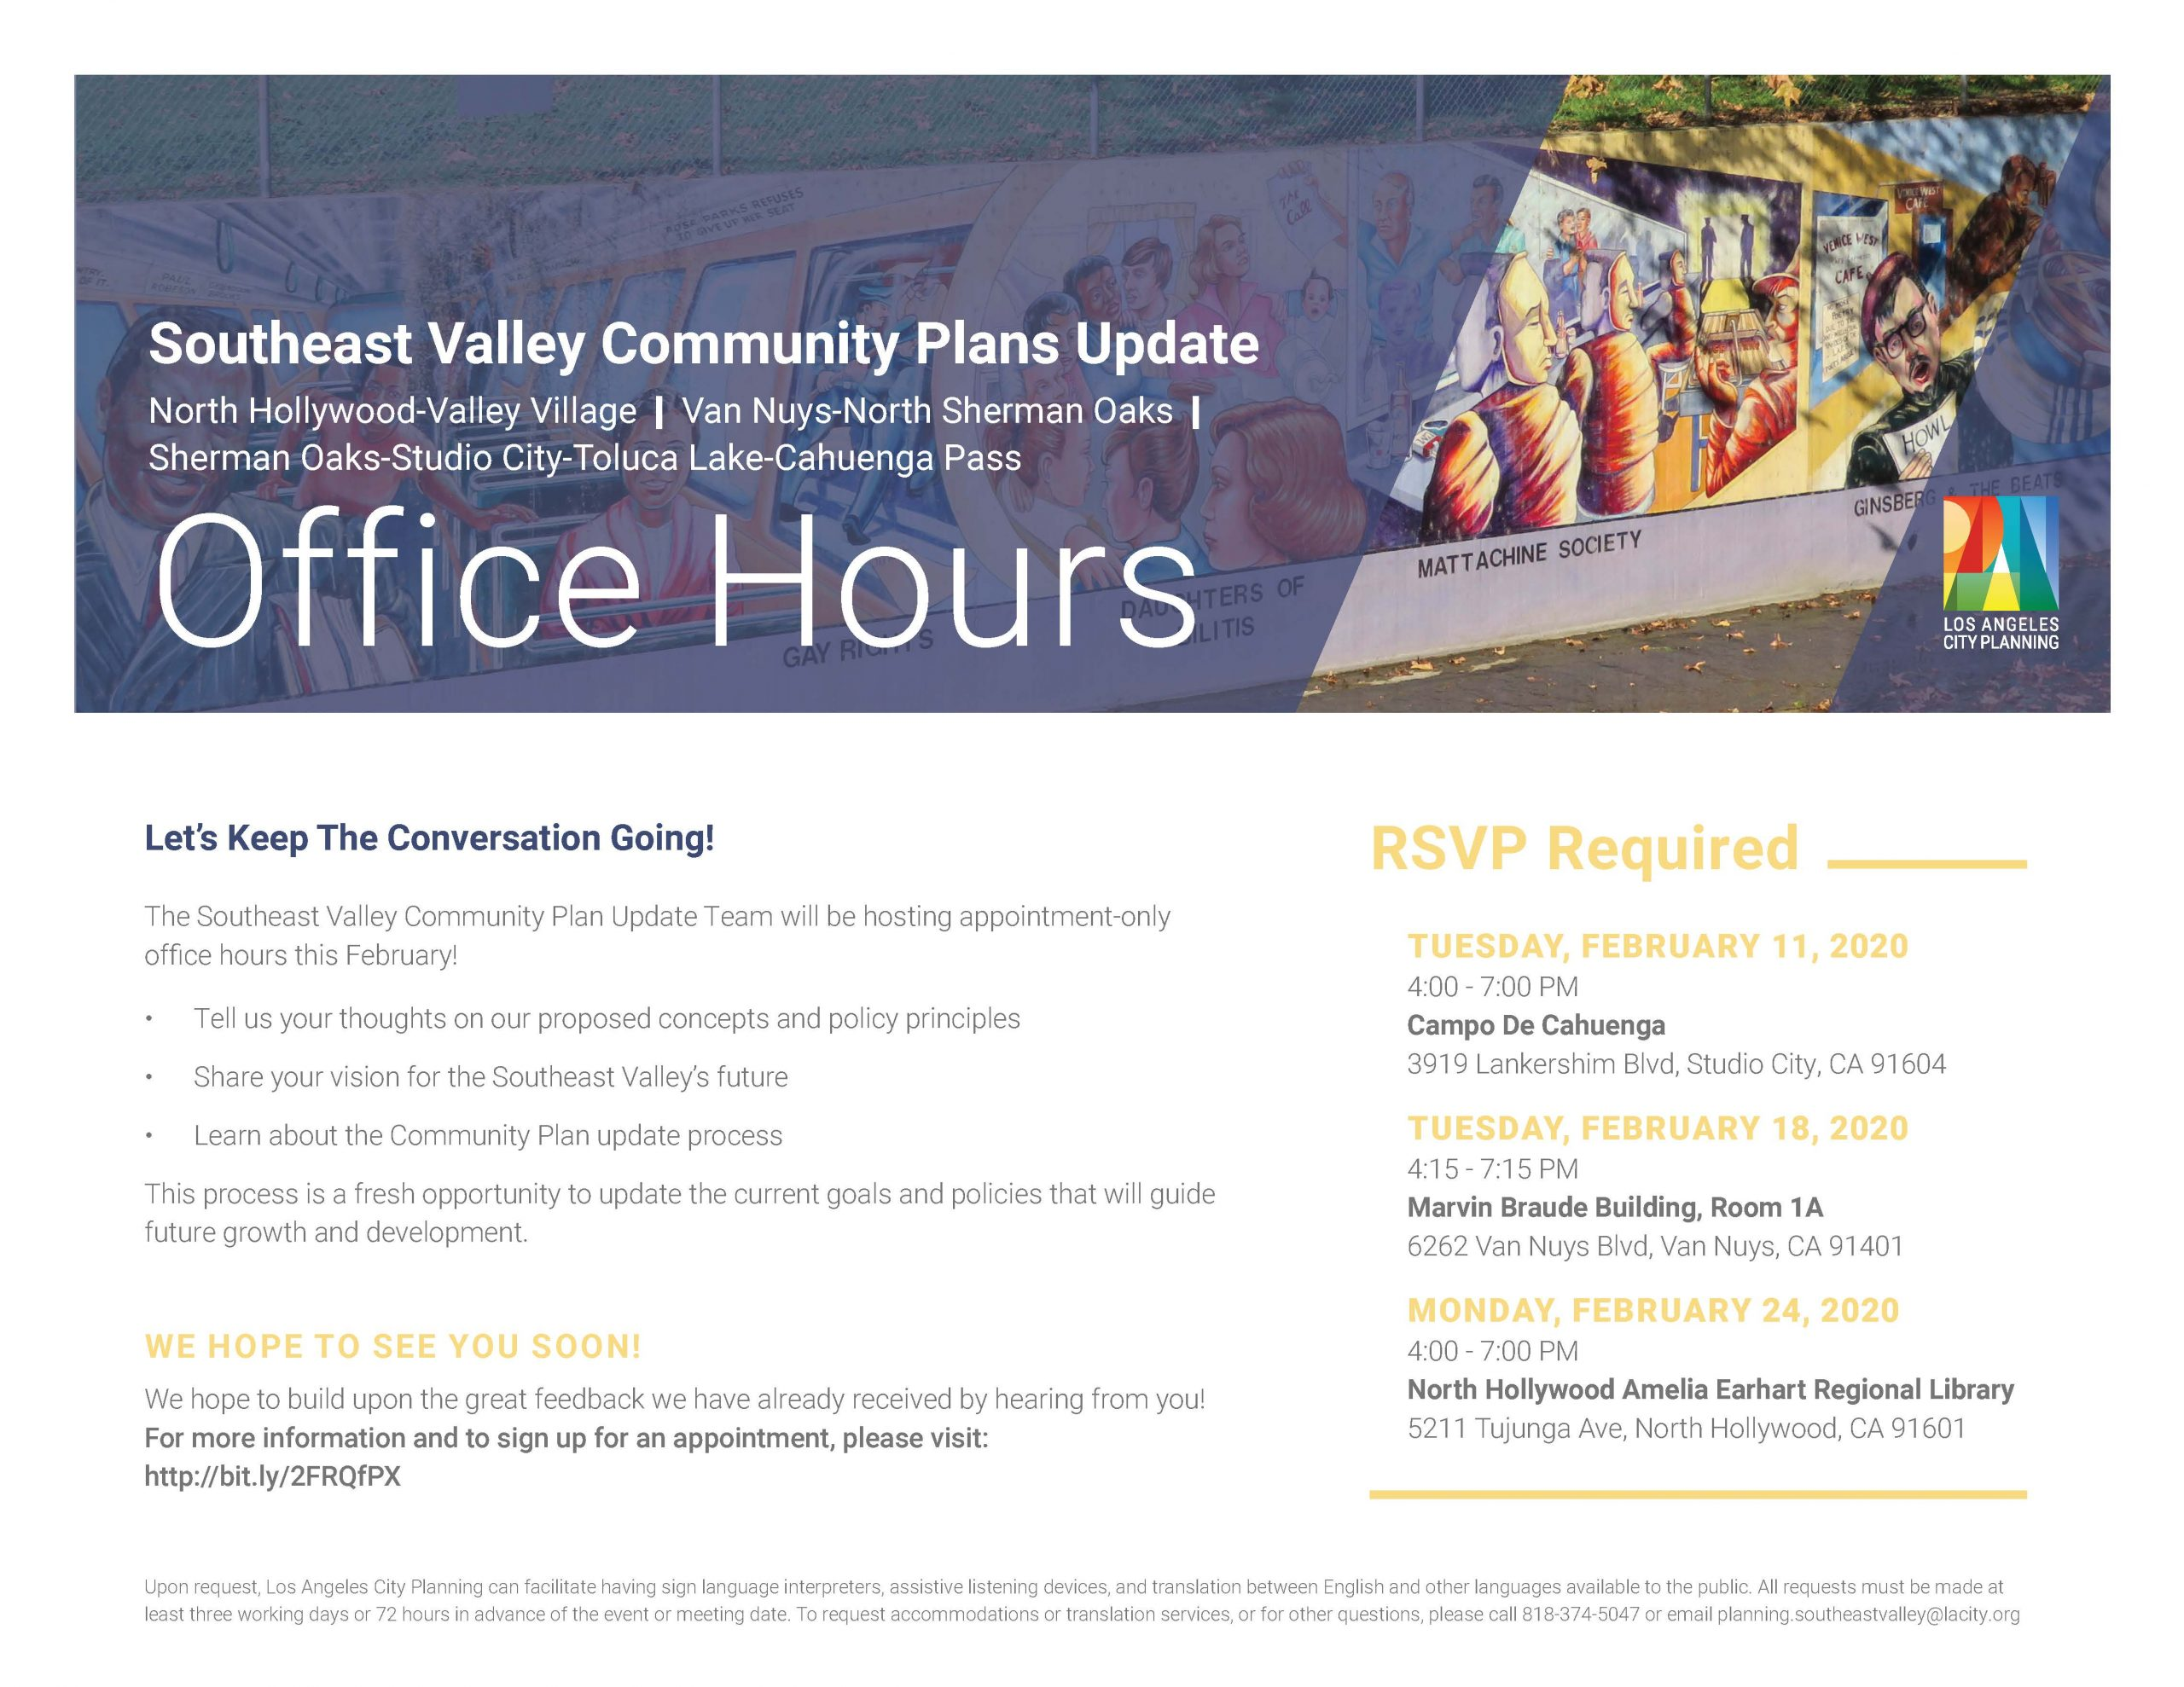 Community Plans Office Hours